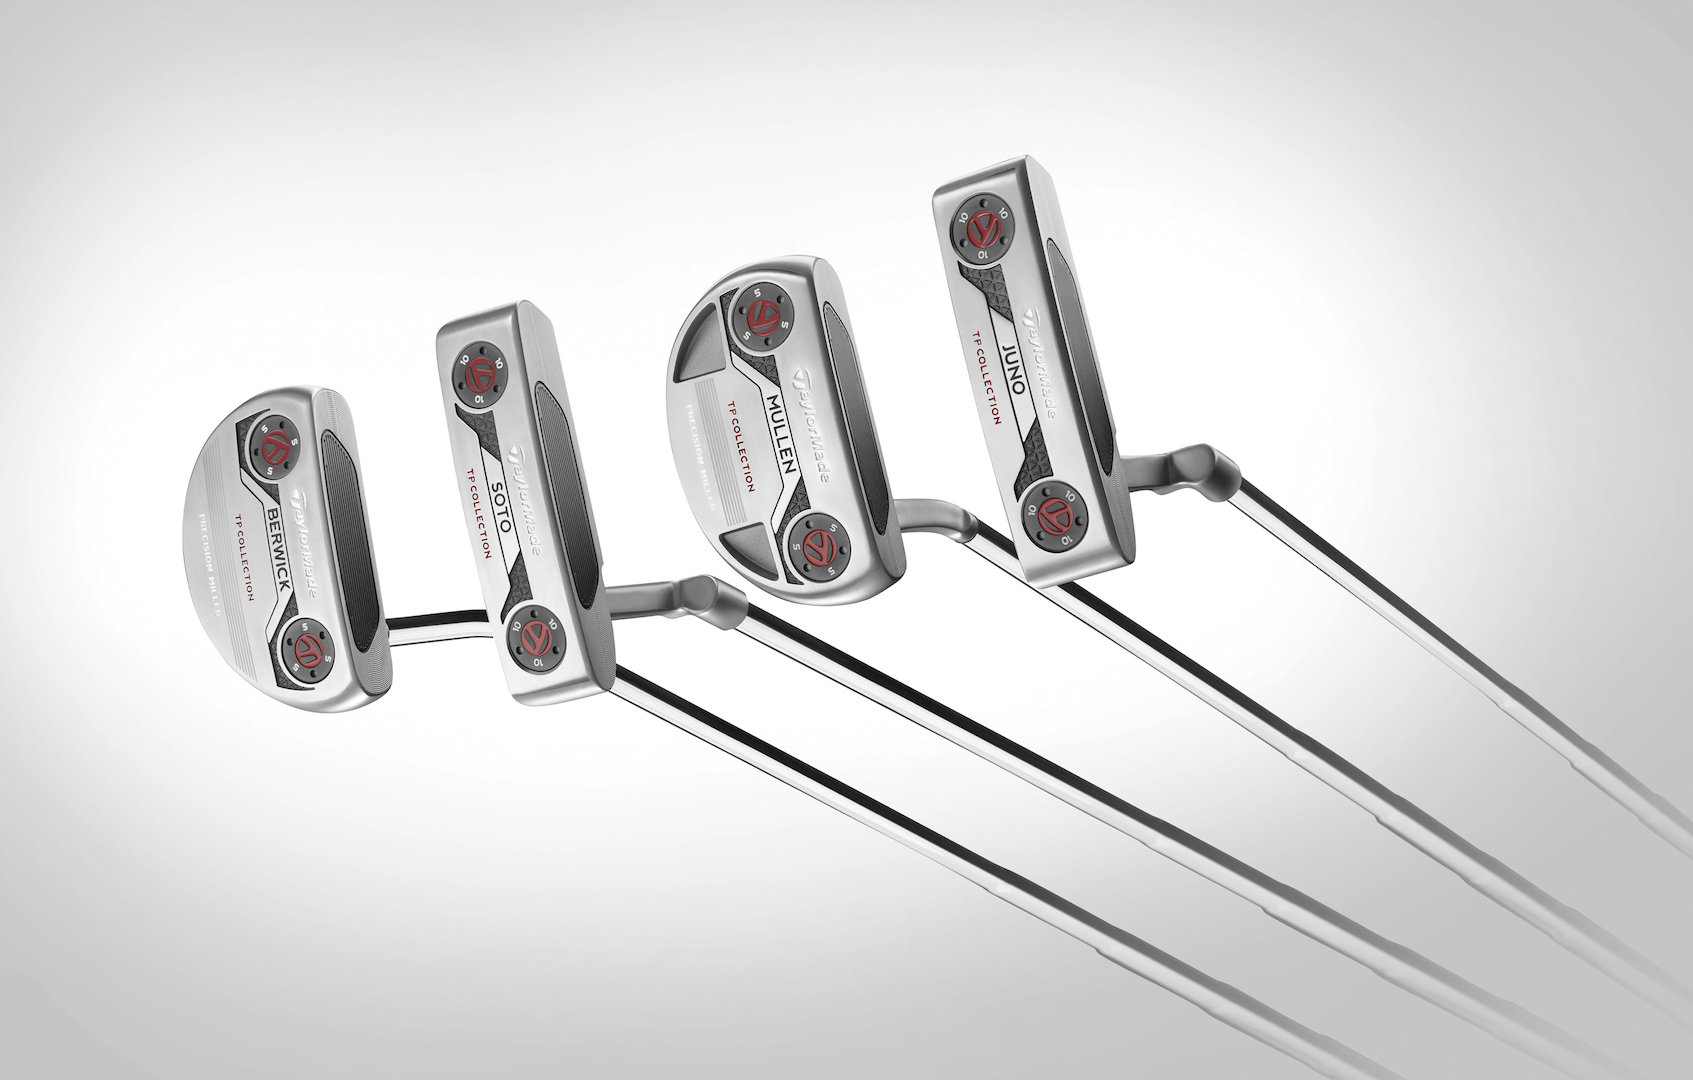 TaylorMade TP Putter Collection